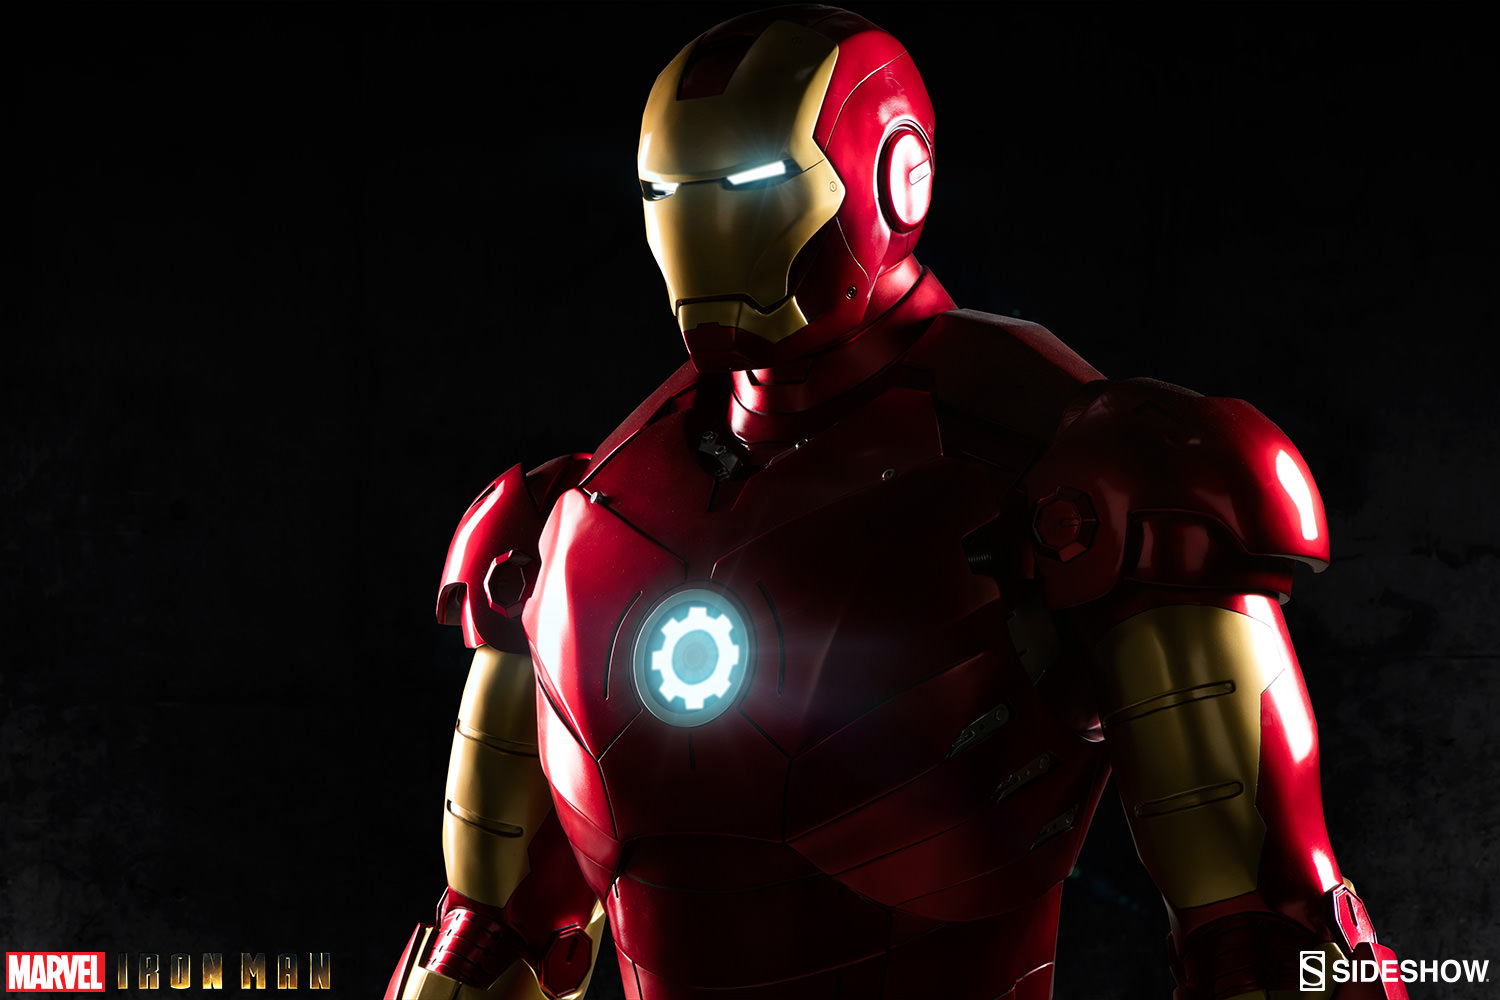 Iron Man Mark III LIMITED EDITION – Life-Size Figure by Sideshow Collectibles